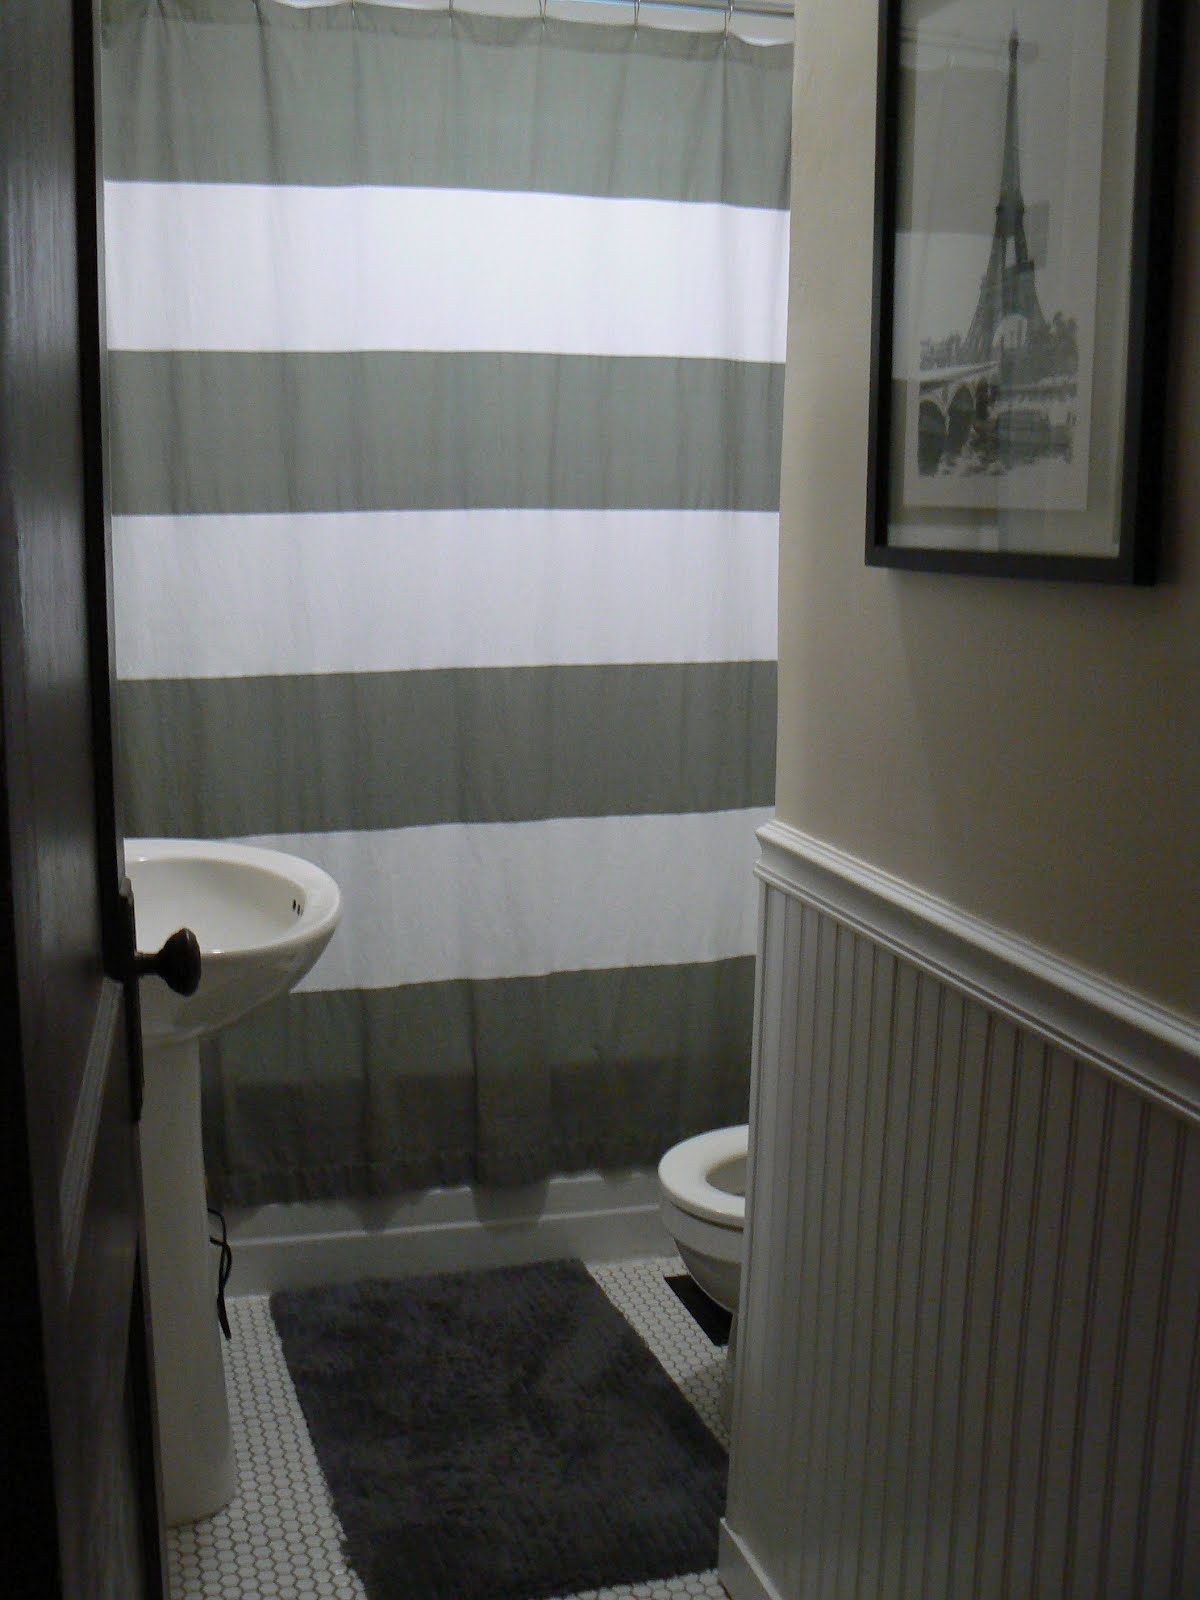 Bathroom curtains from walmart - Online Window Shopping Shower Curtains